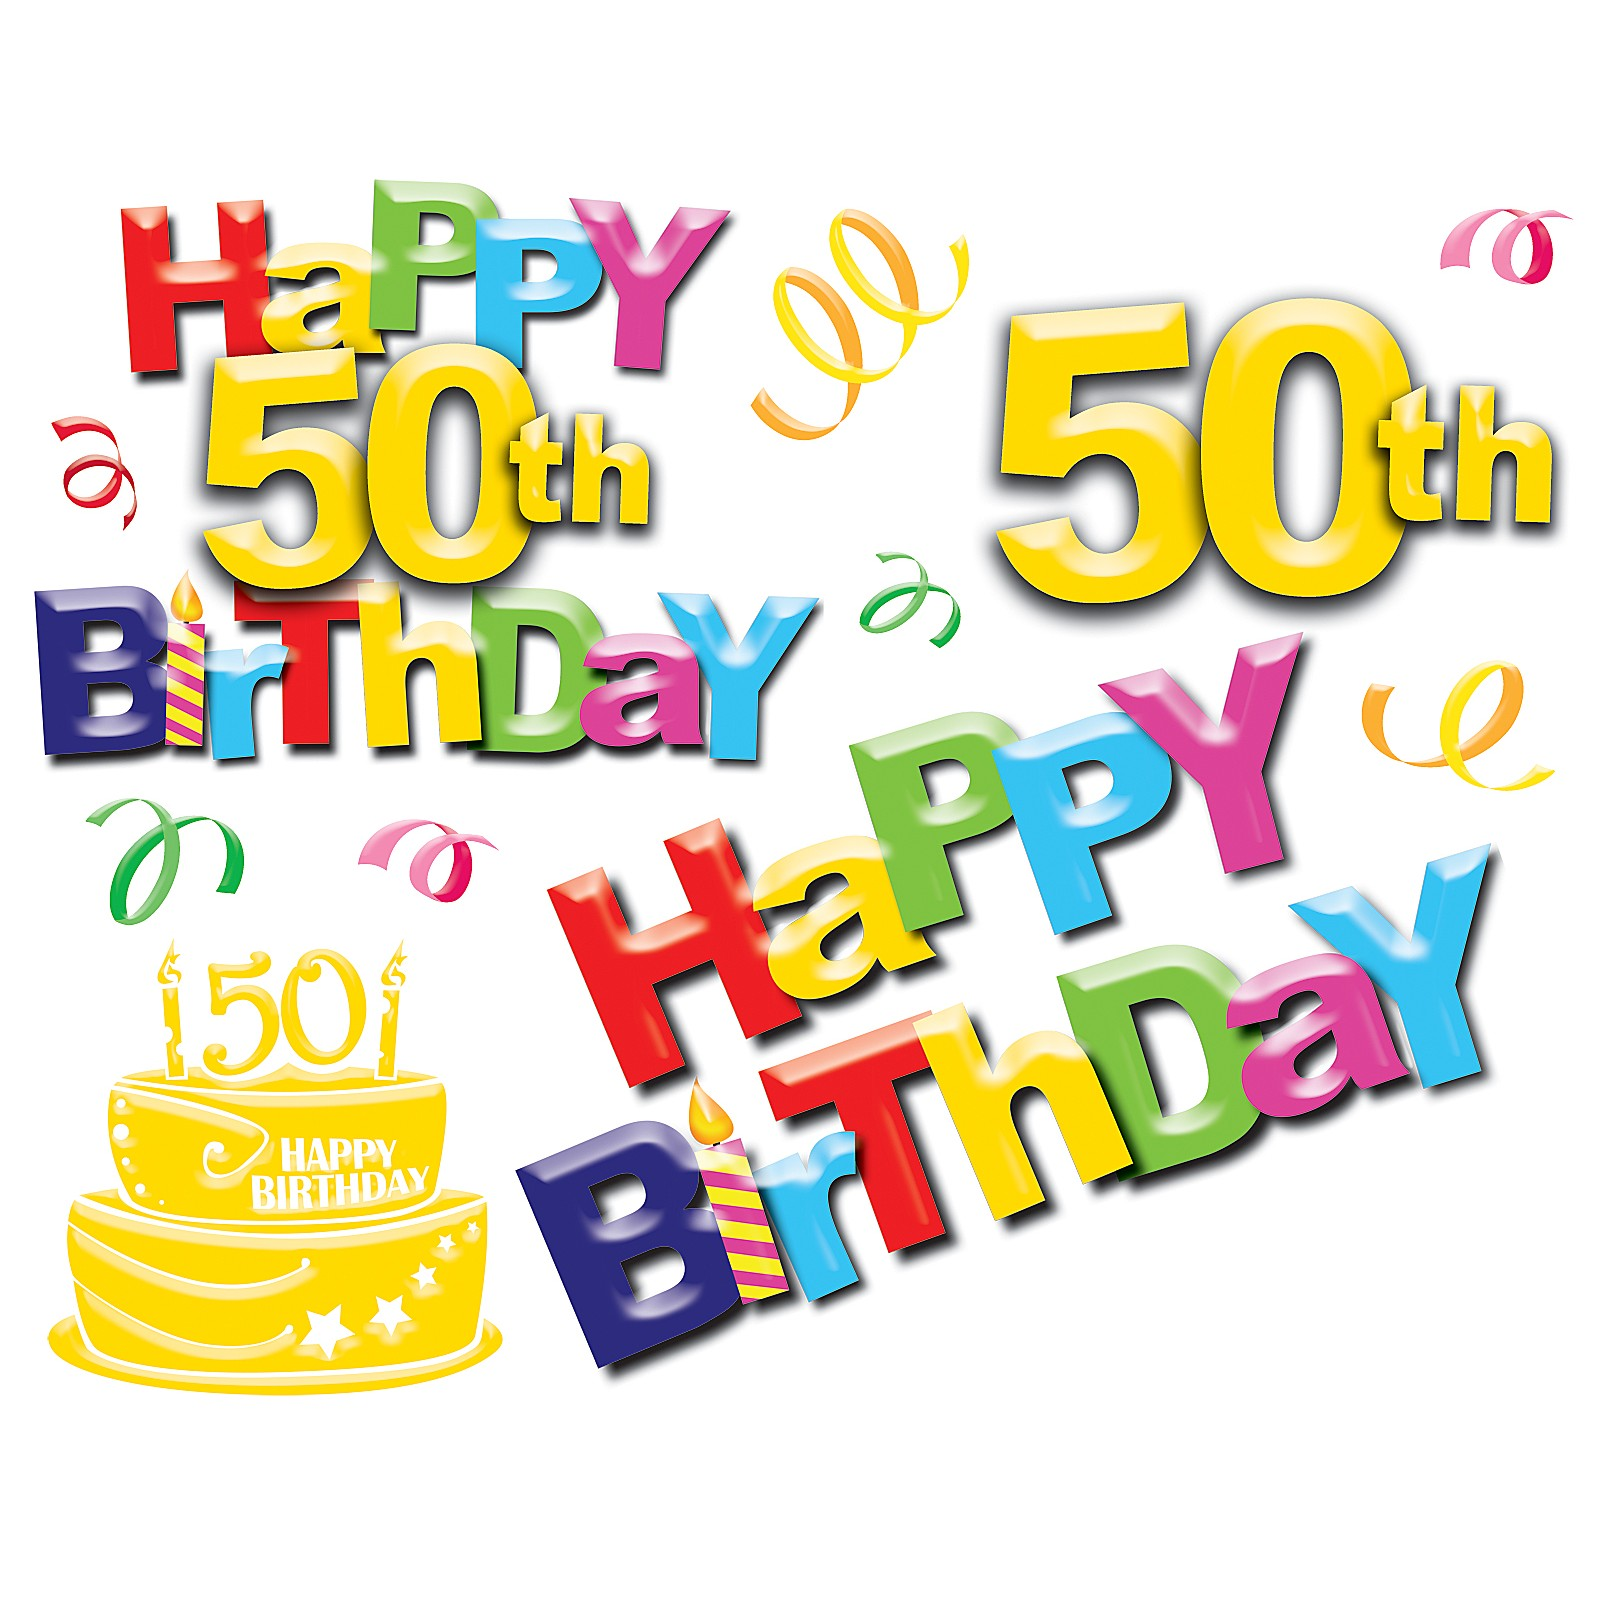 50th Birthday Clipart Clip Art ..